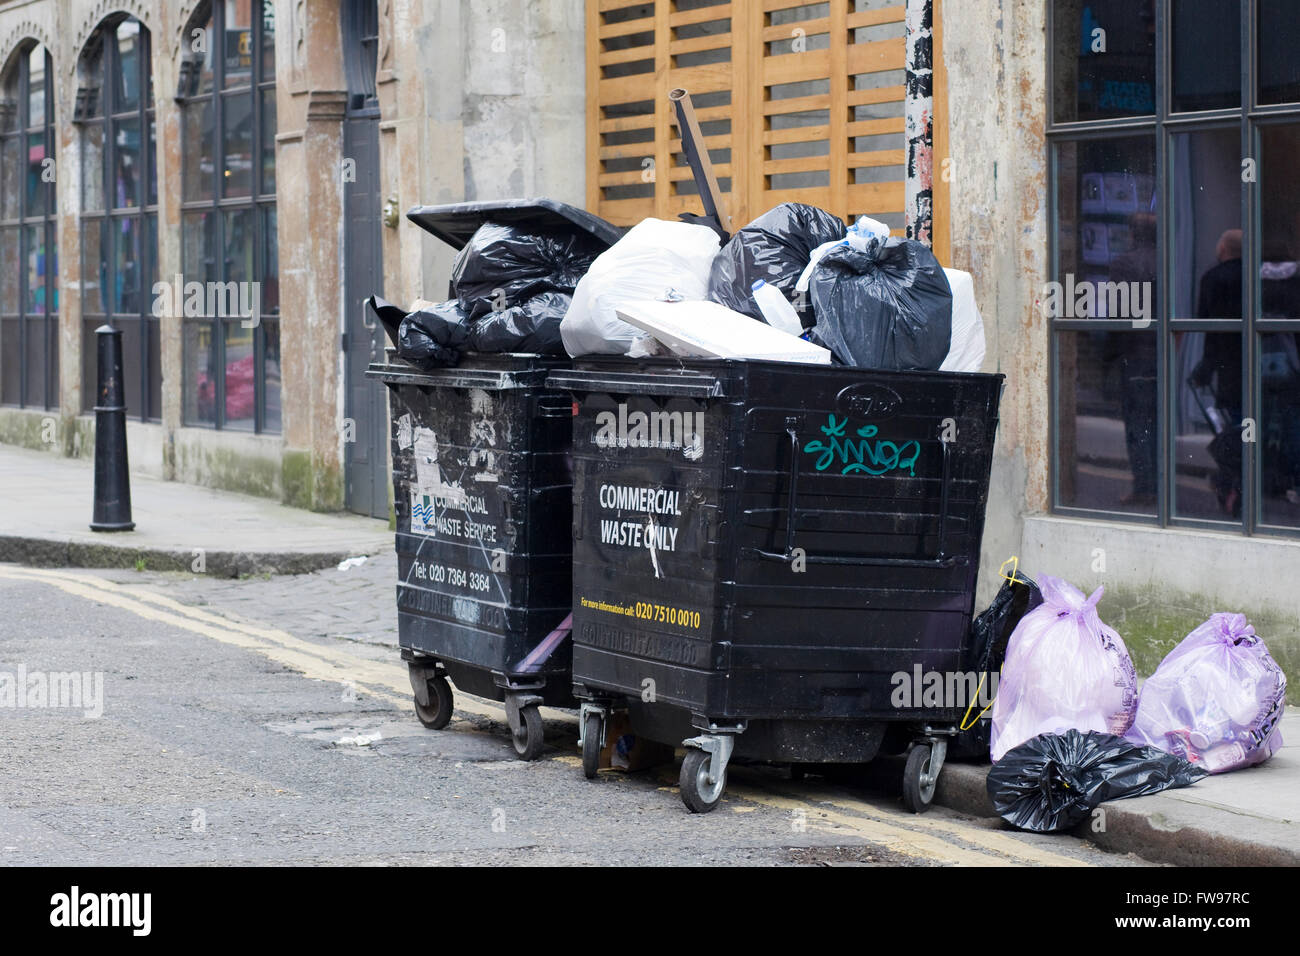 Industrial bins full of plastic bags and refuge - Stock Image